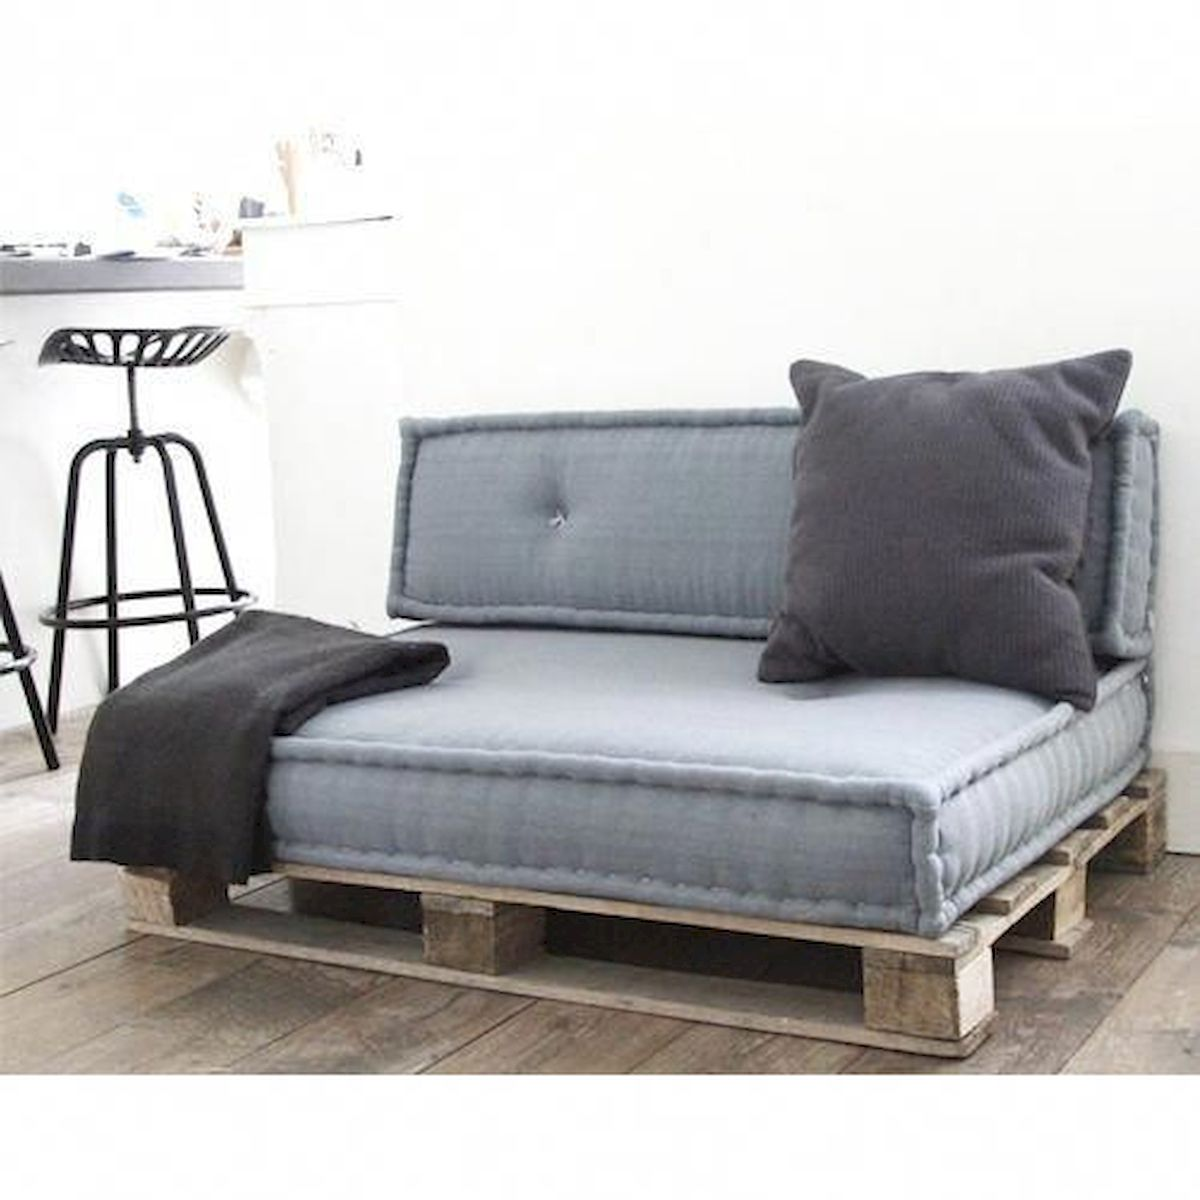 33 Ideas For Pallet Sofa (14)